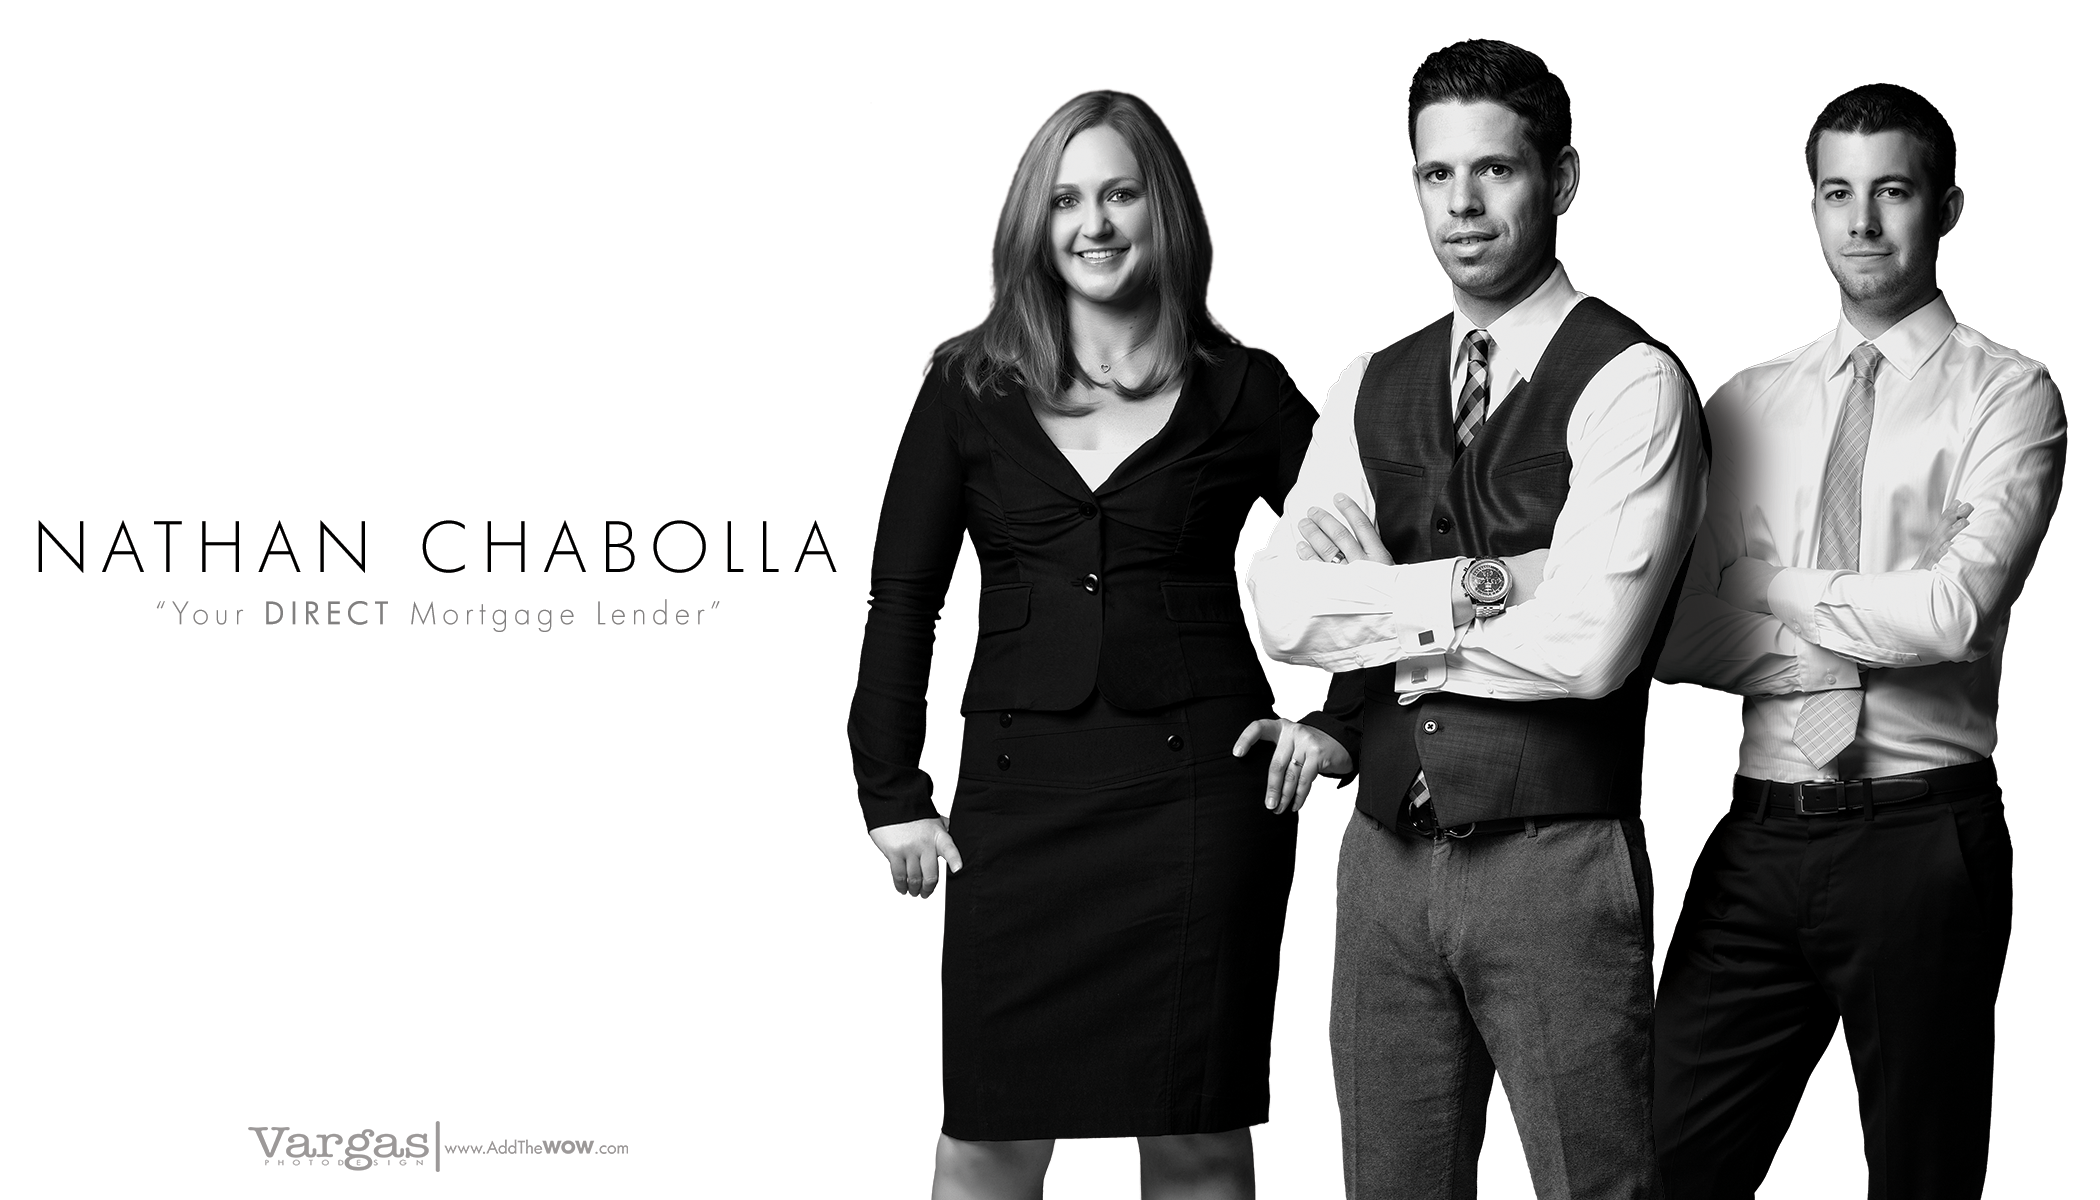 Nathan-Chabolla-Mortgage-Lender-Team-Photo-Branding-2.png